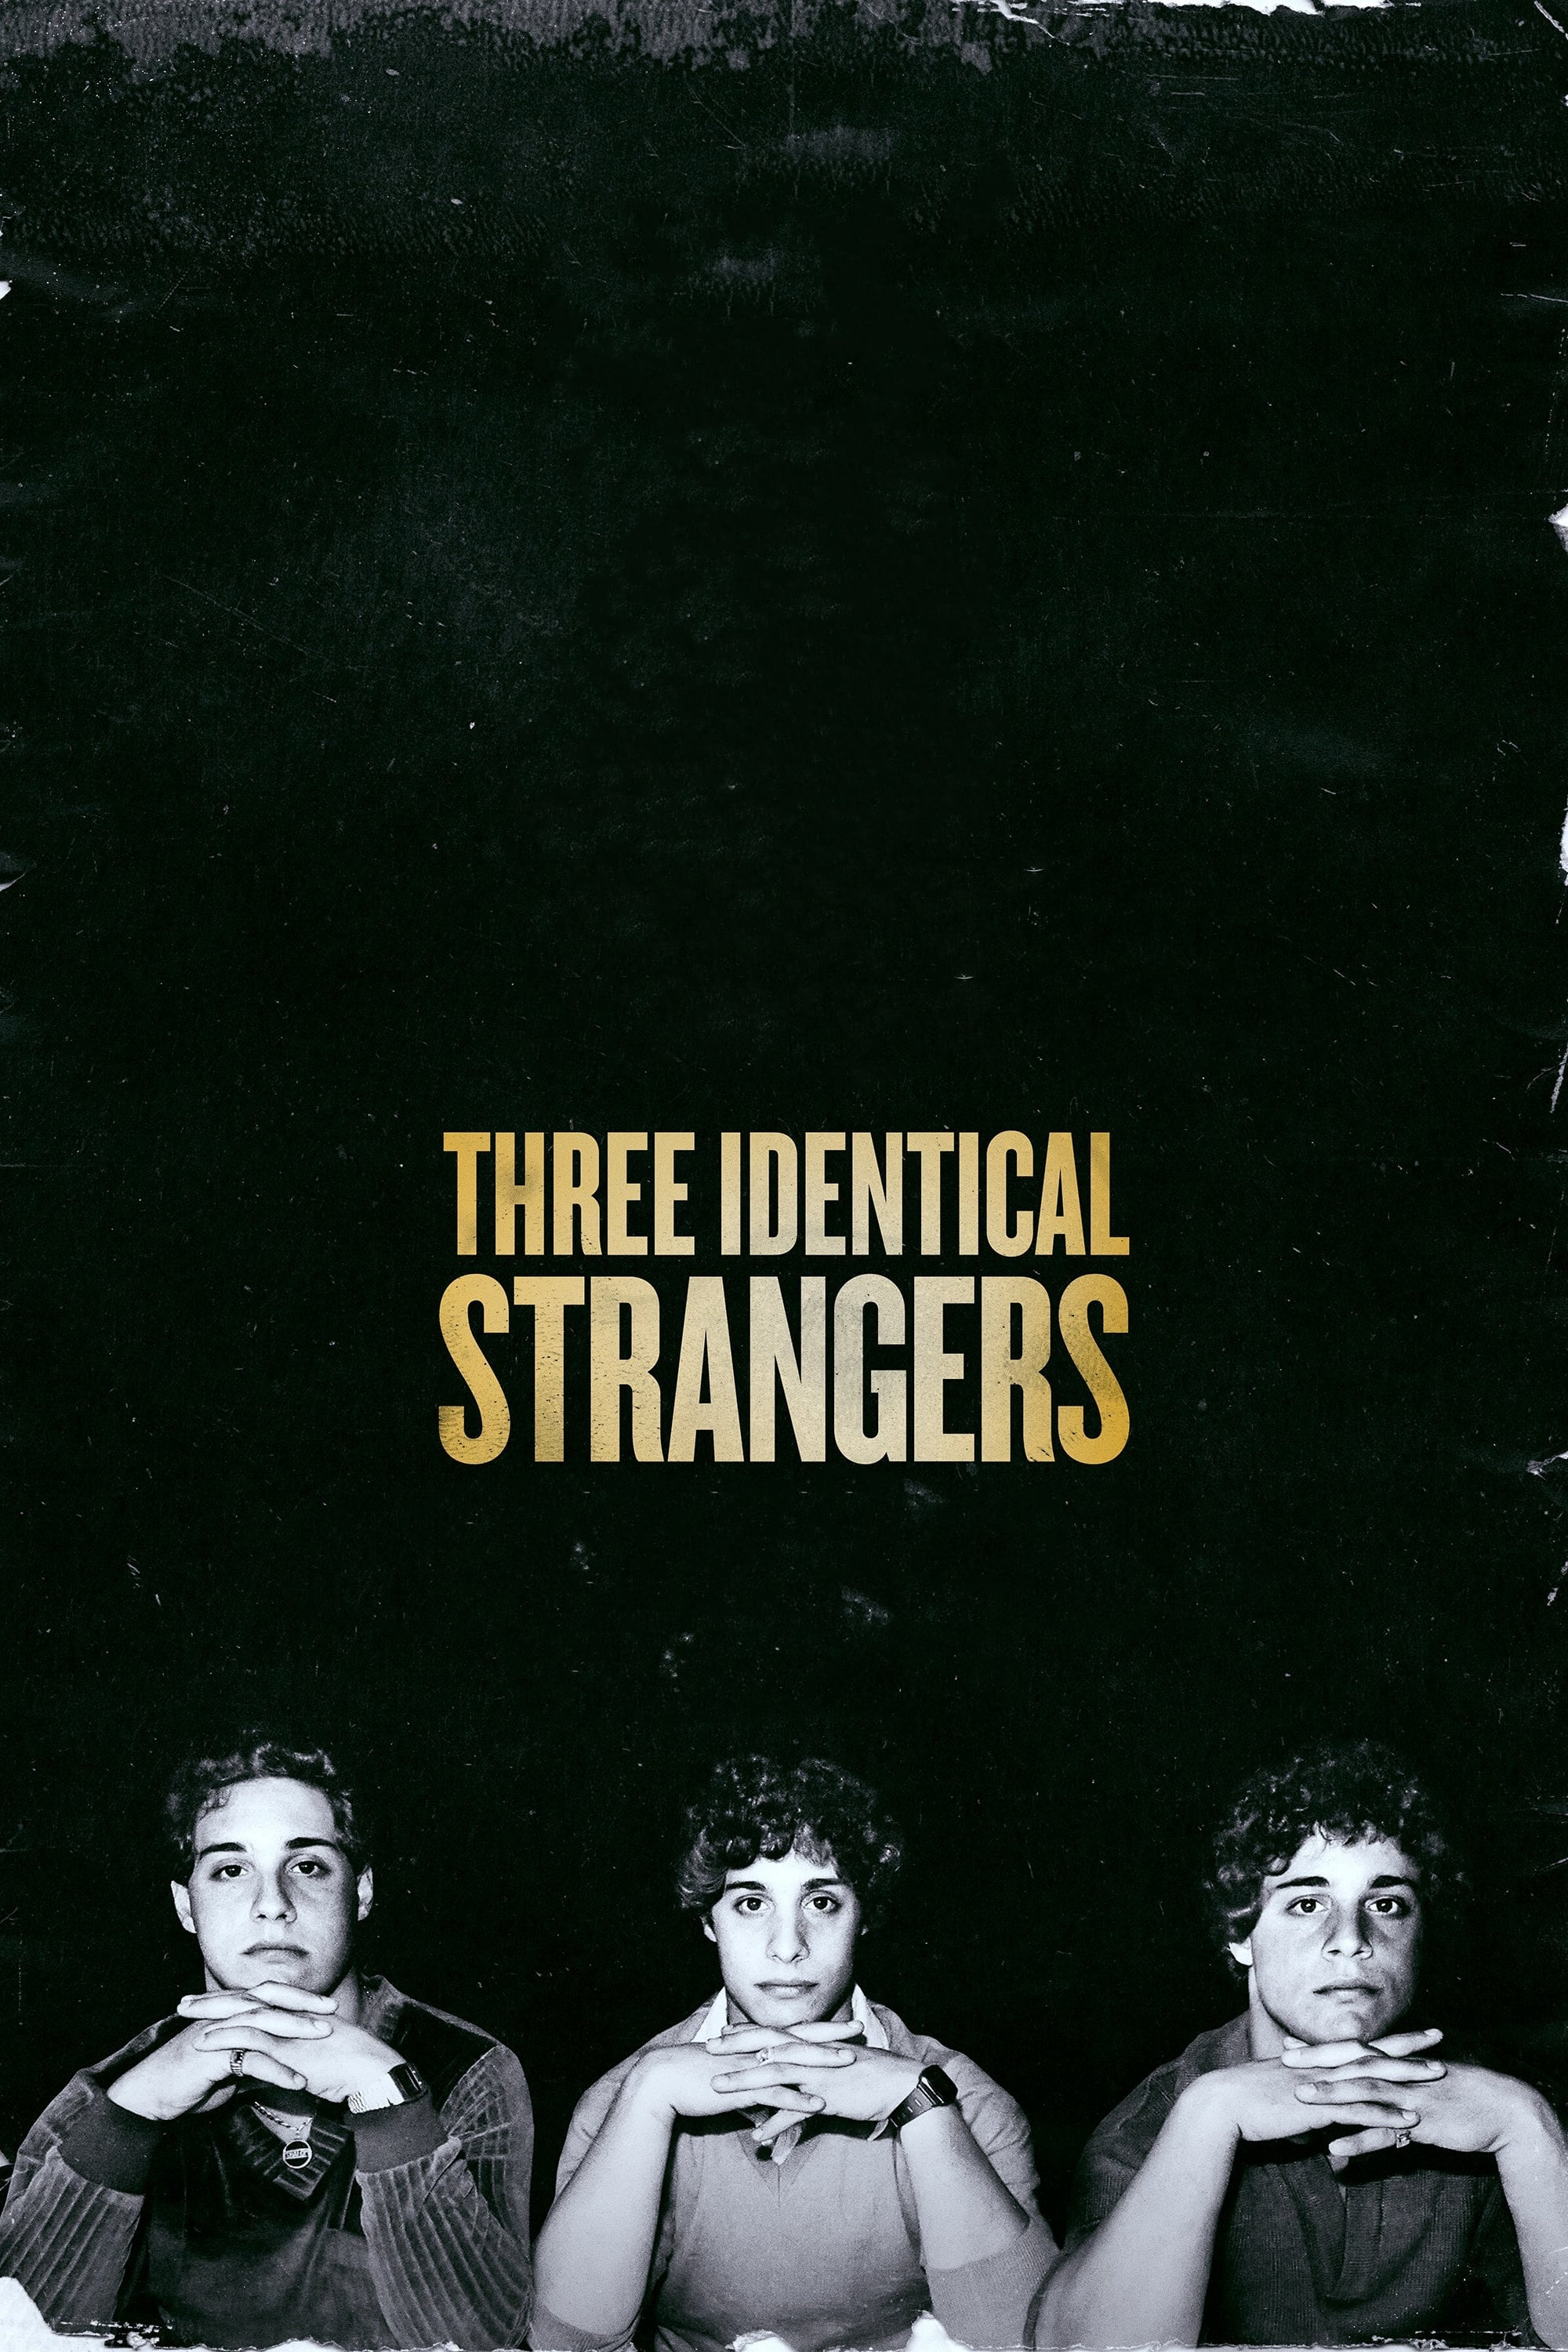 image for Three Identical Strangers